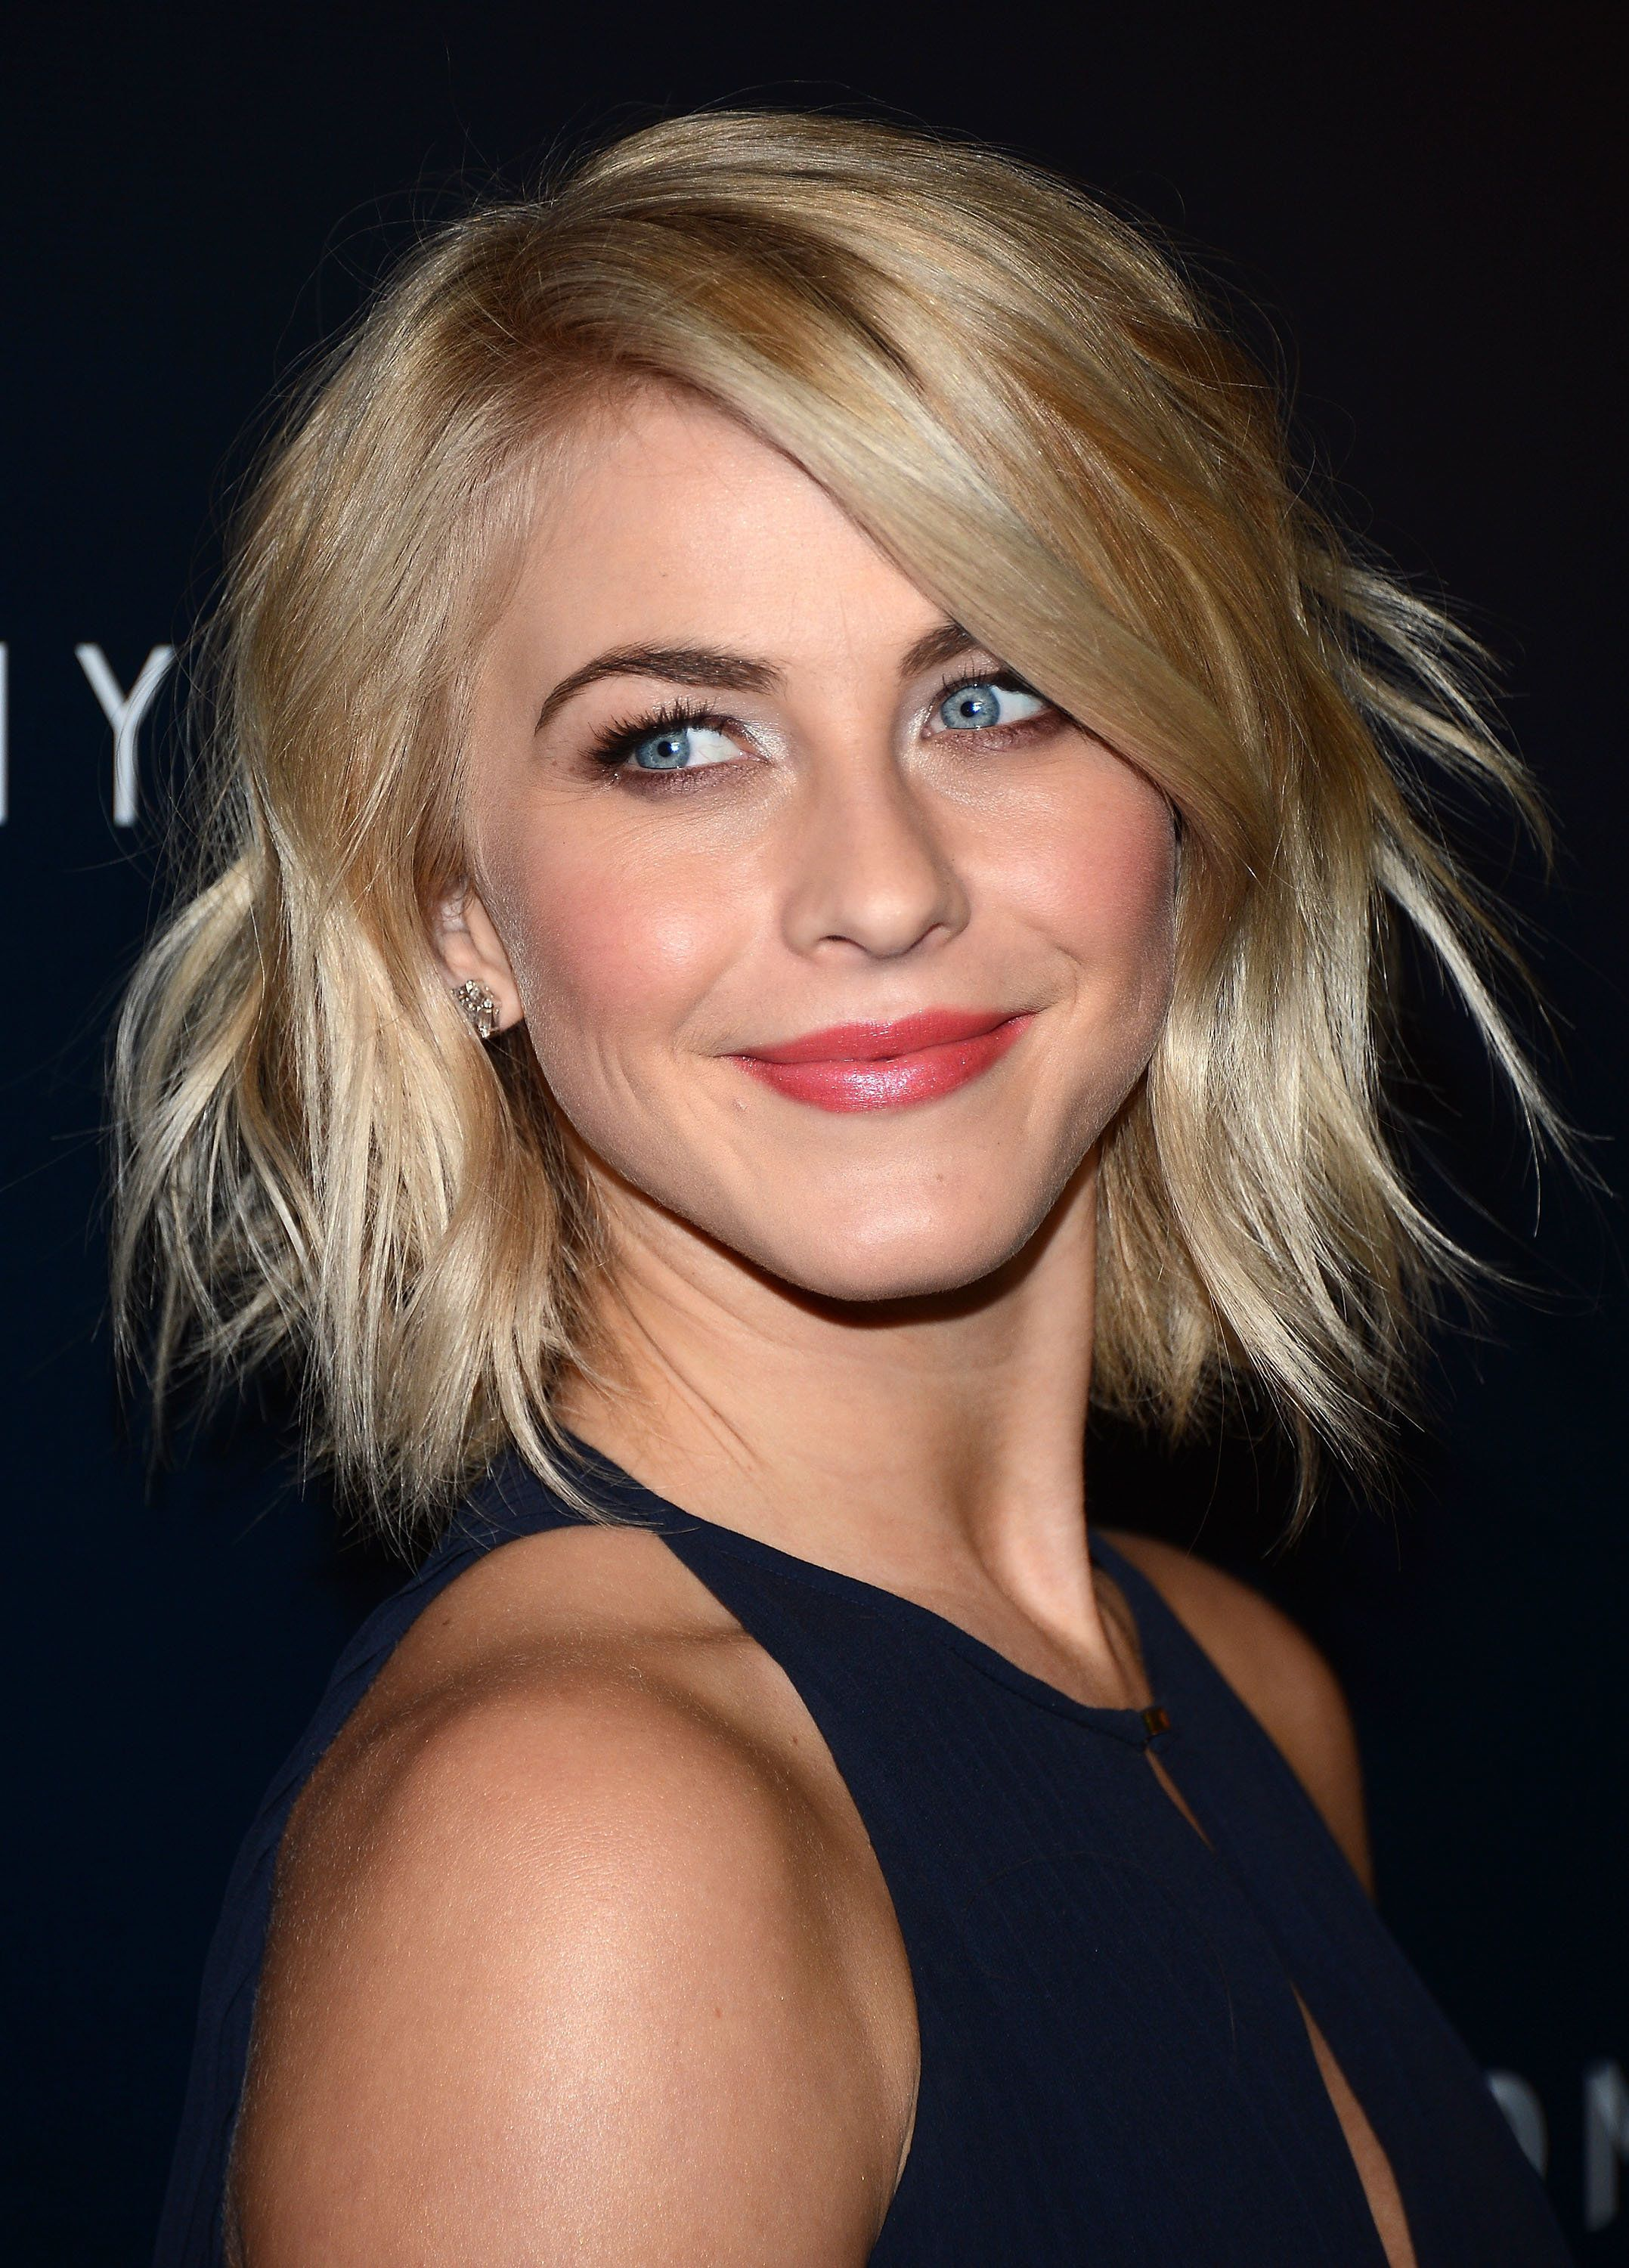 WEST HOLLYWOOD, CA - FEBRUARY 13:  Actress and dancer Julianne Hough arrives at the Tommy Hilfiger West Coast Flagship Grand Opening Event at Tommy Hilfiger West Hollywood on February 13, 2013 in West Hollywood, California.  (Photo by Amanda Edwards/WireImage)